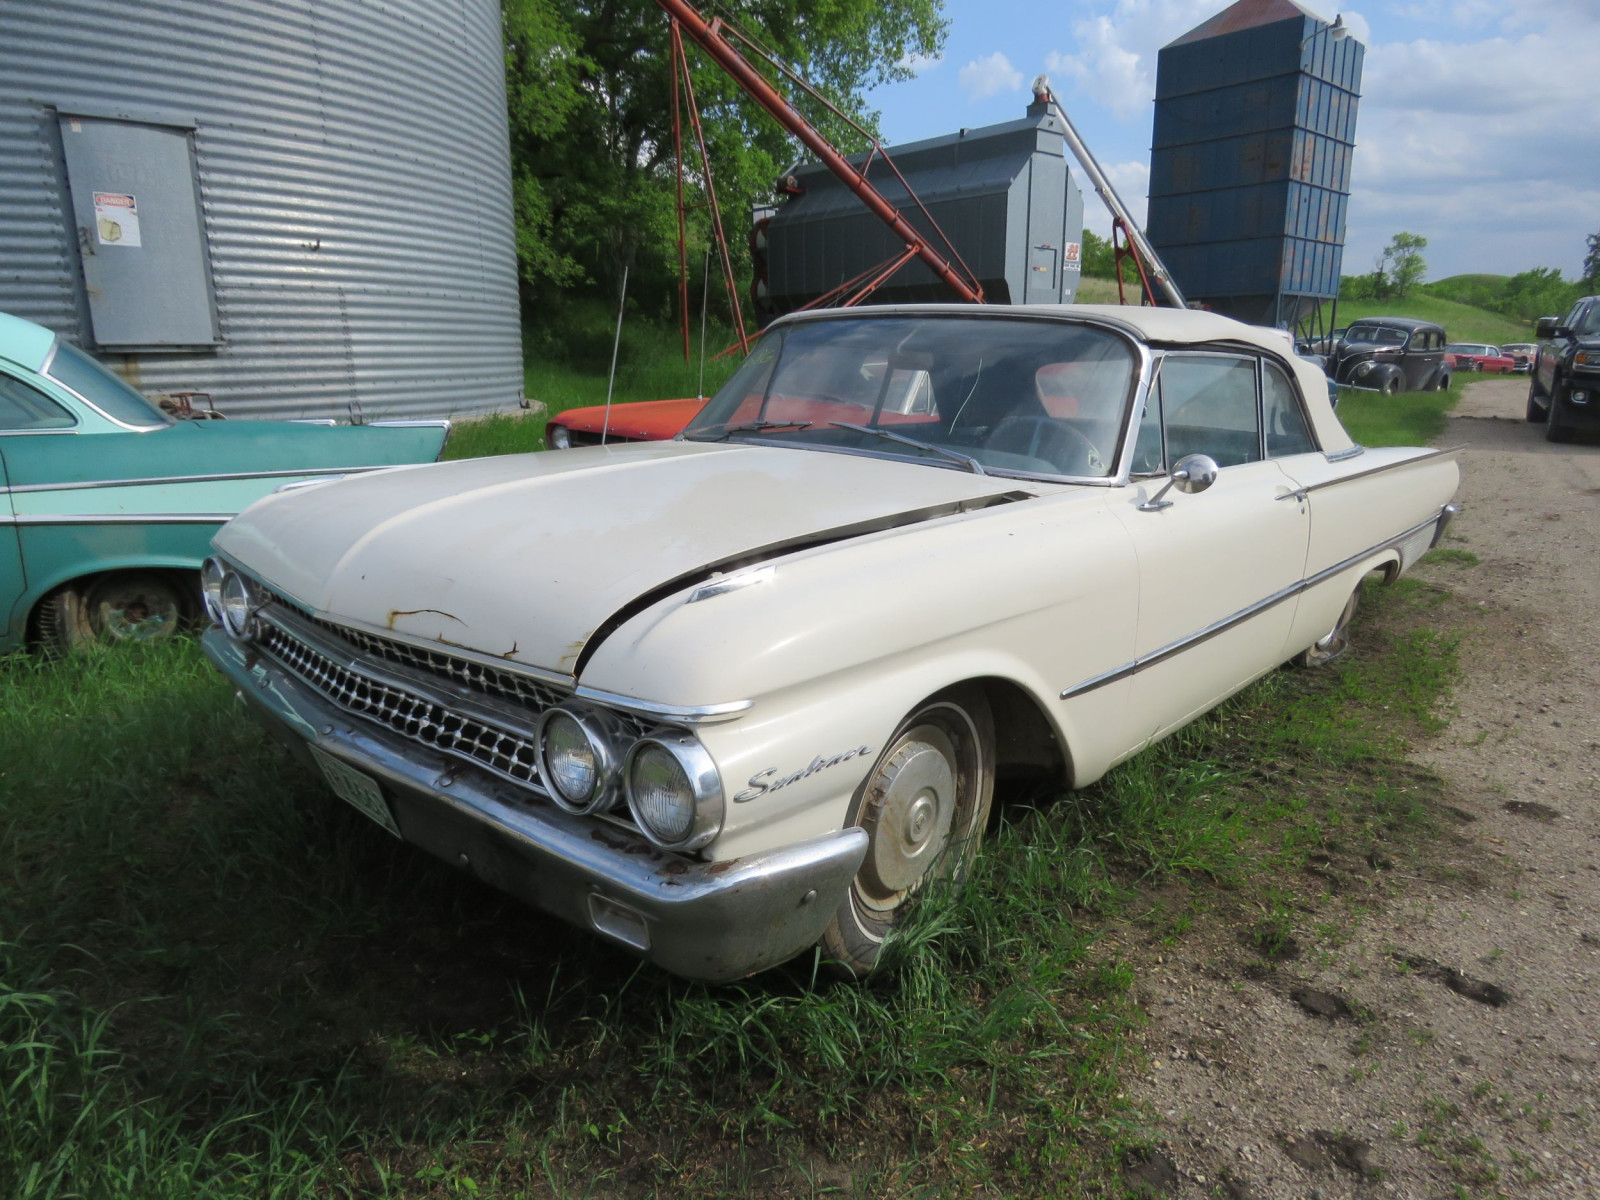 1961 Ford Sunliner Convertible 1G55W143311 - Image 3